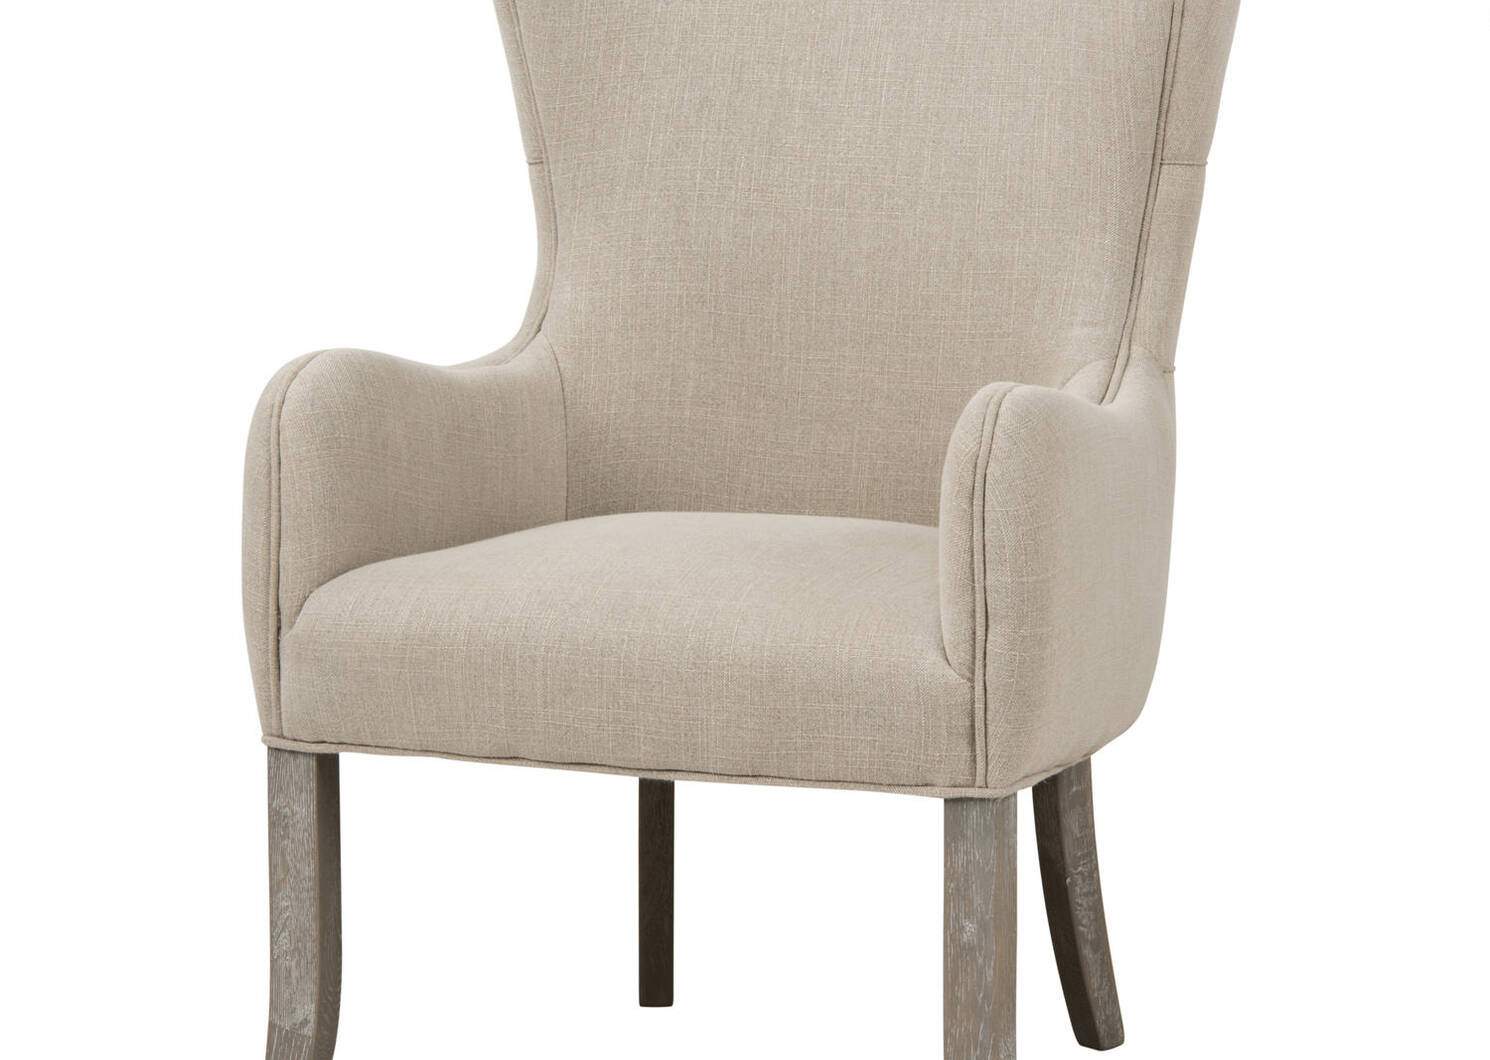 Oak Bay Host Chair -Nantucket Linen